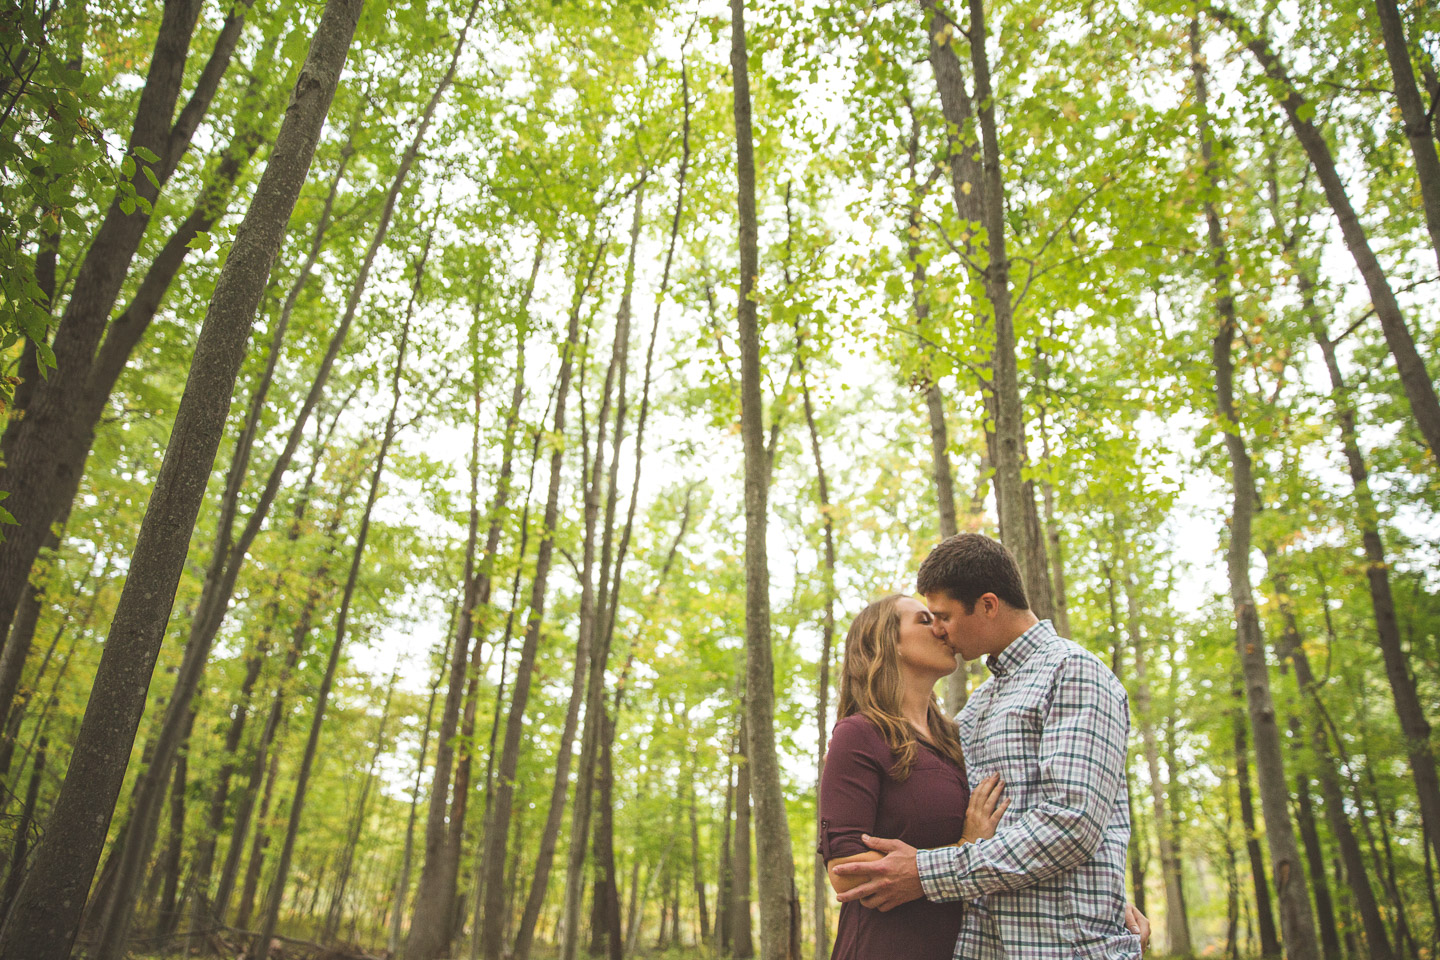 Engagement-Milford-Kensington-Metropark-Forest-Wide-Angle-Couple-Kissing